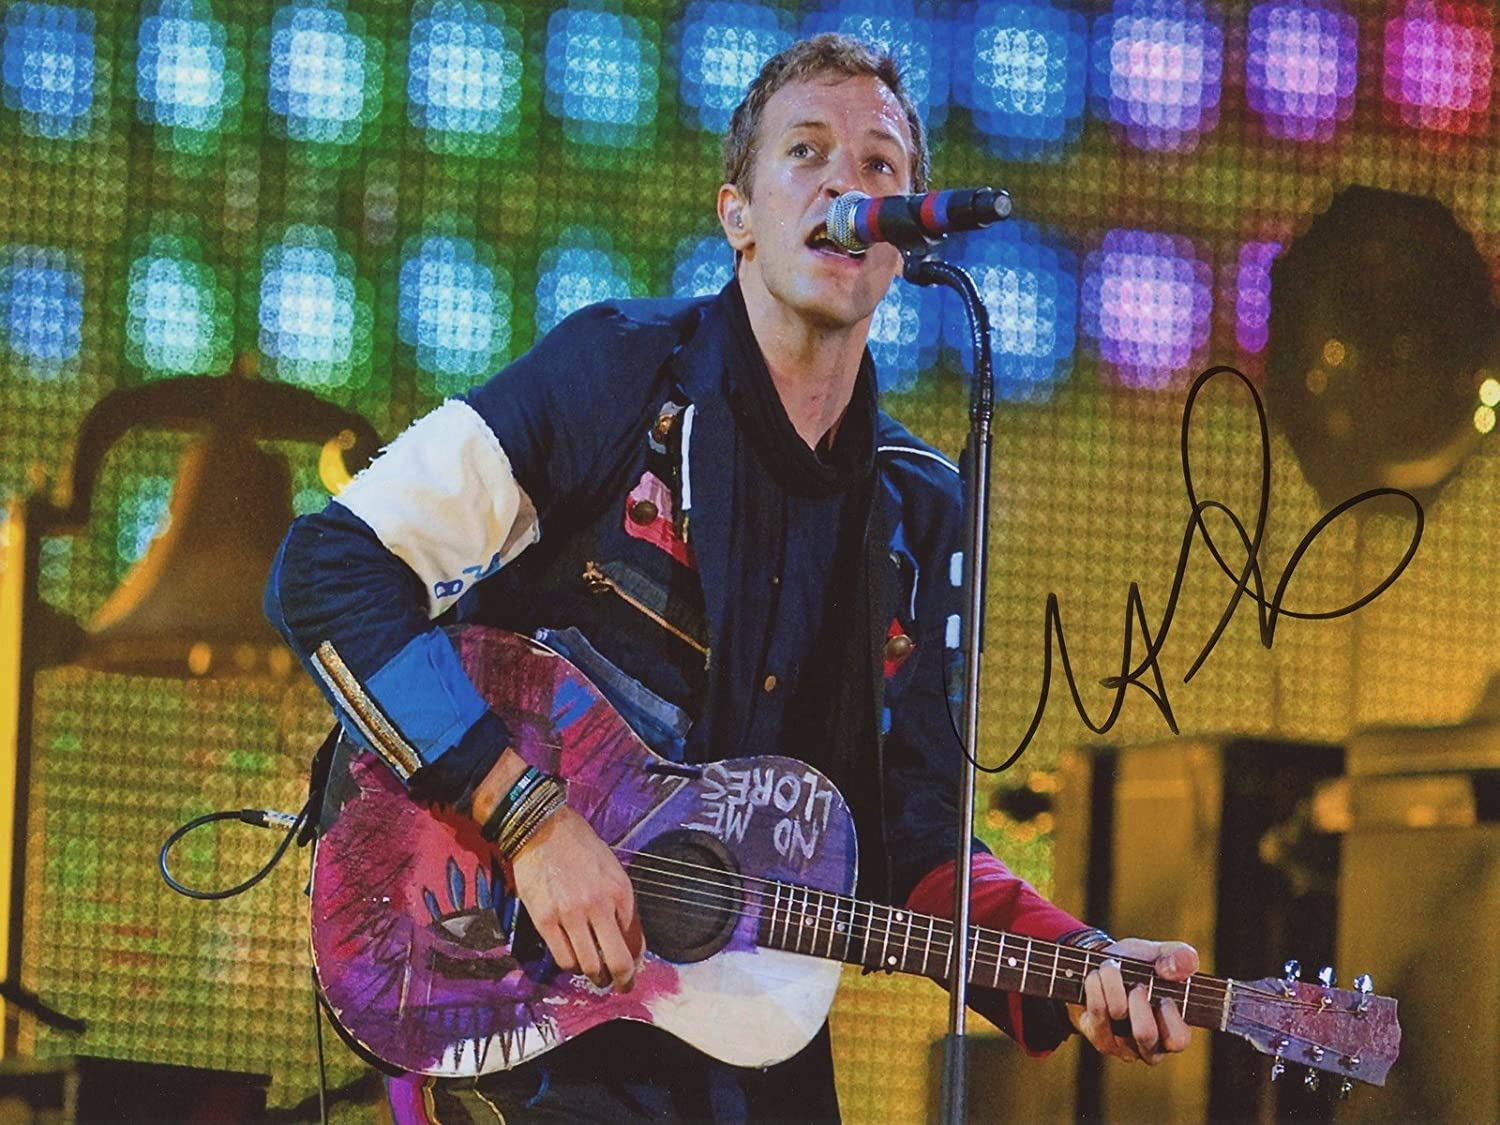 Chris Martin Coldplay SIGNED 12 x 8 Foto img01 Authentic + Echtheitszertifikat